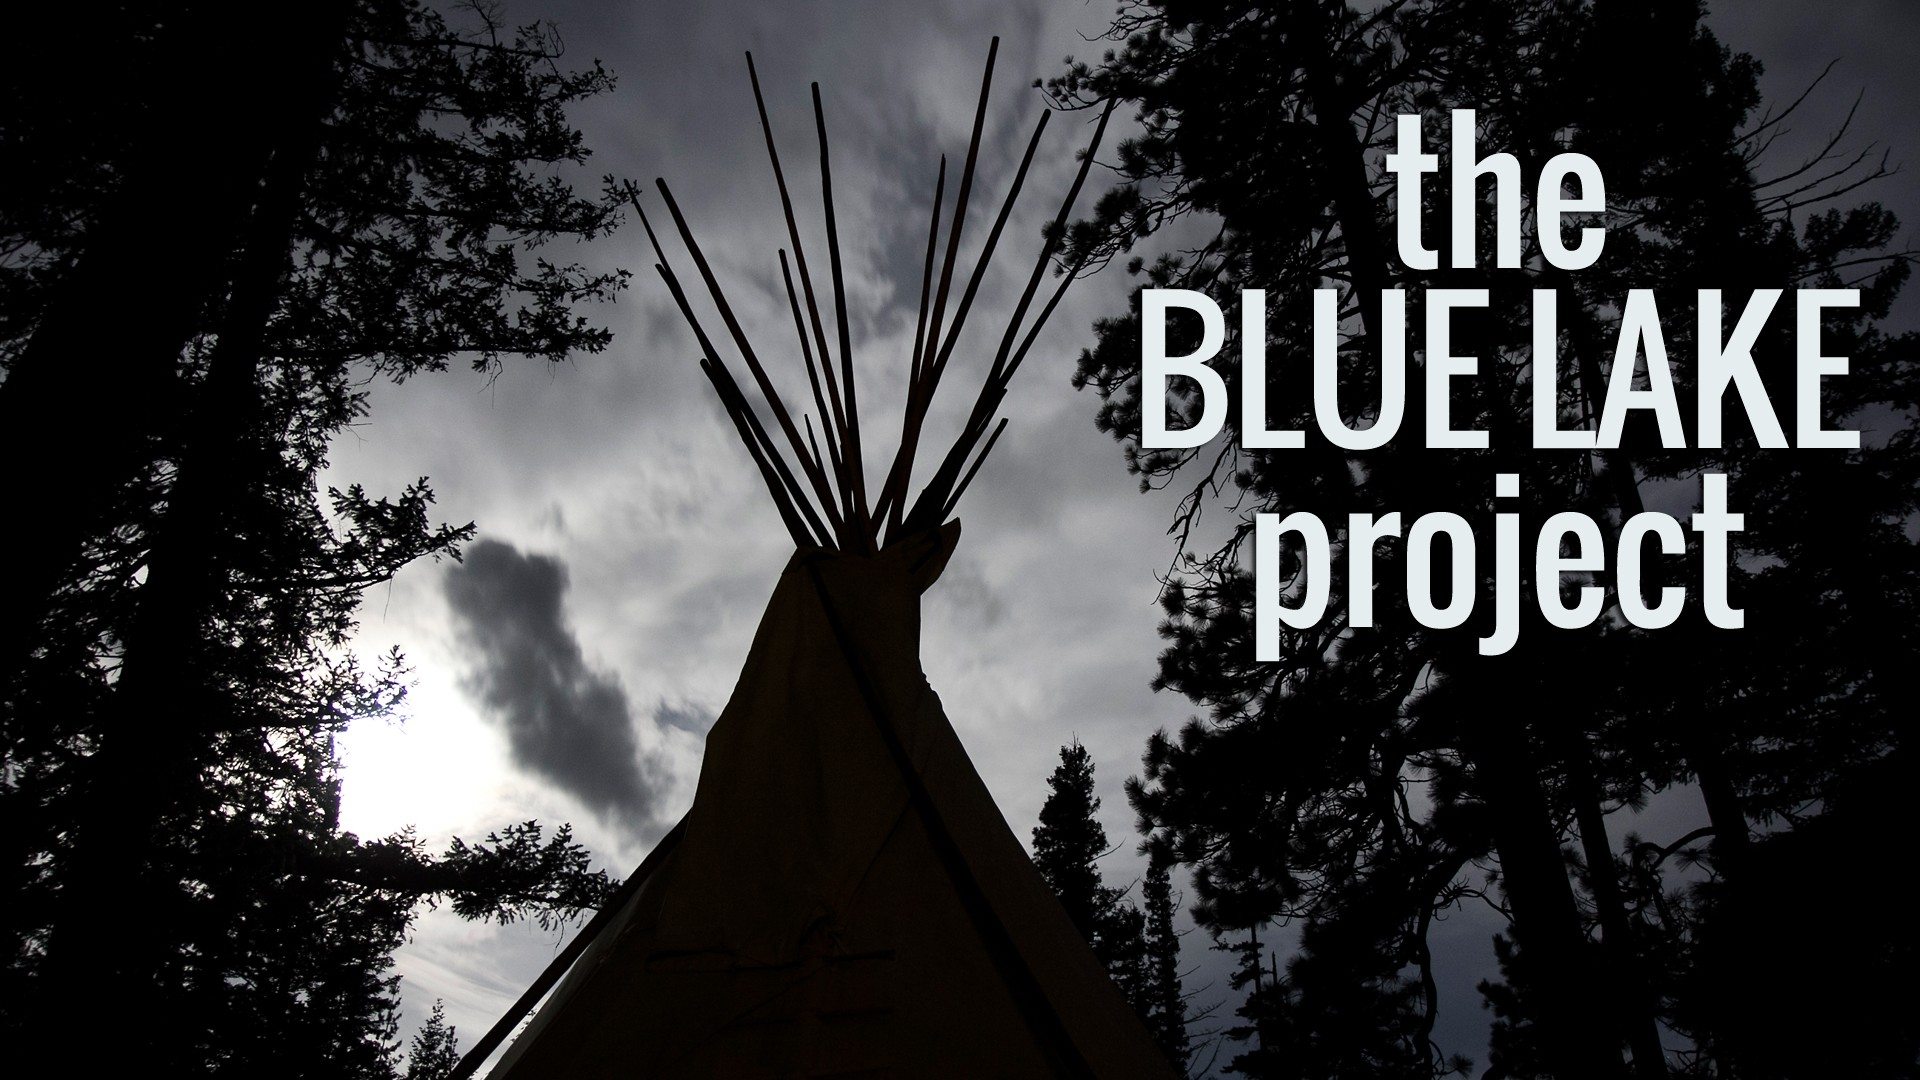 the BLUE LAKE project